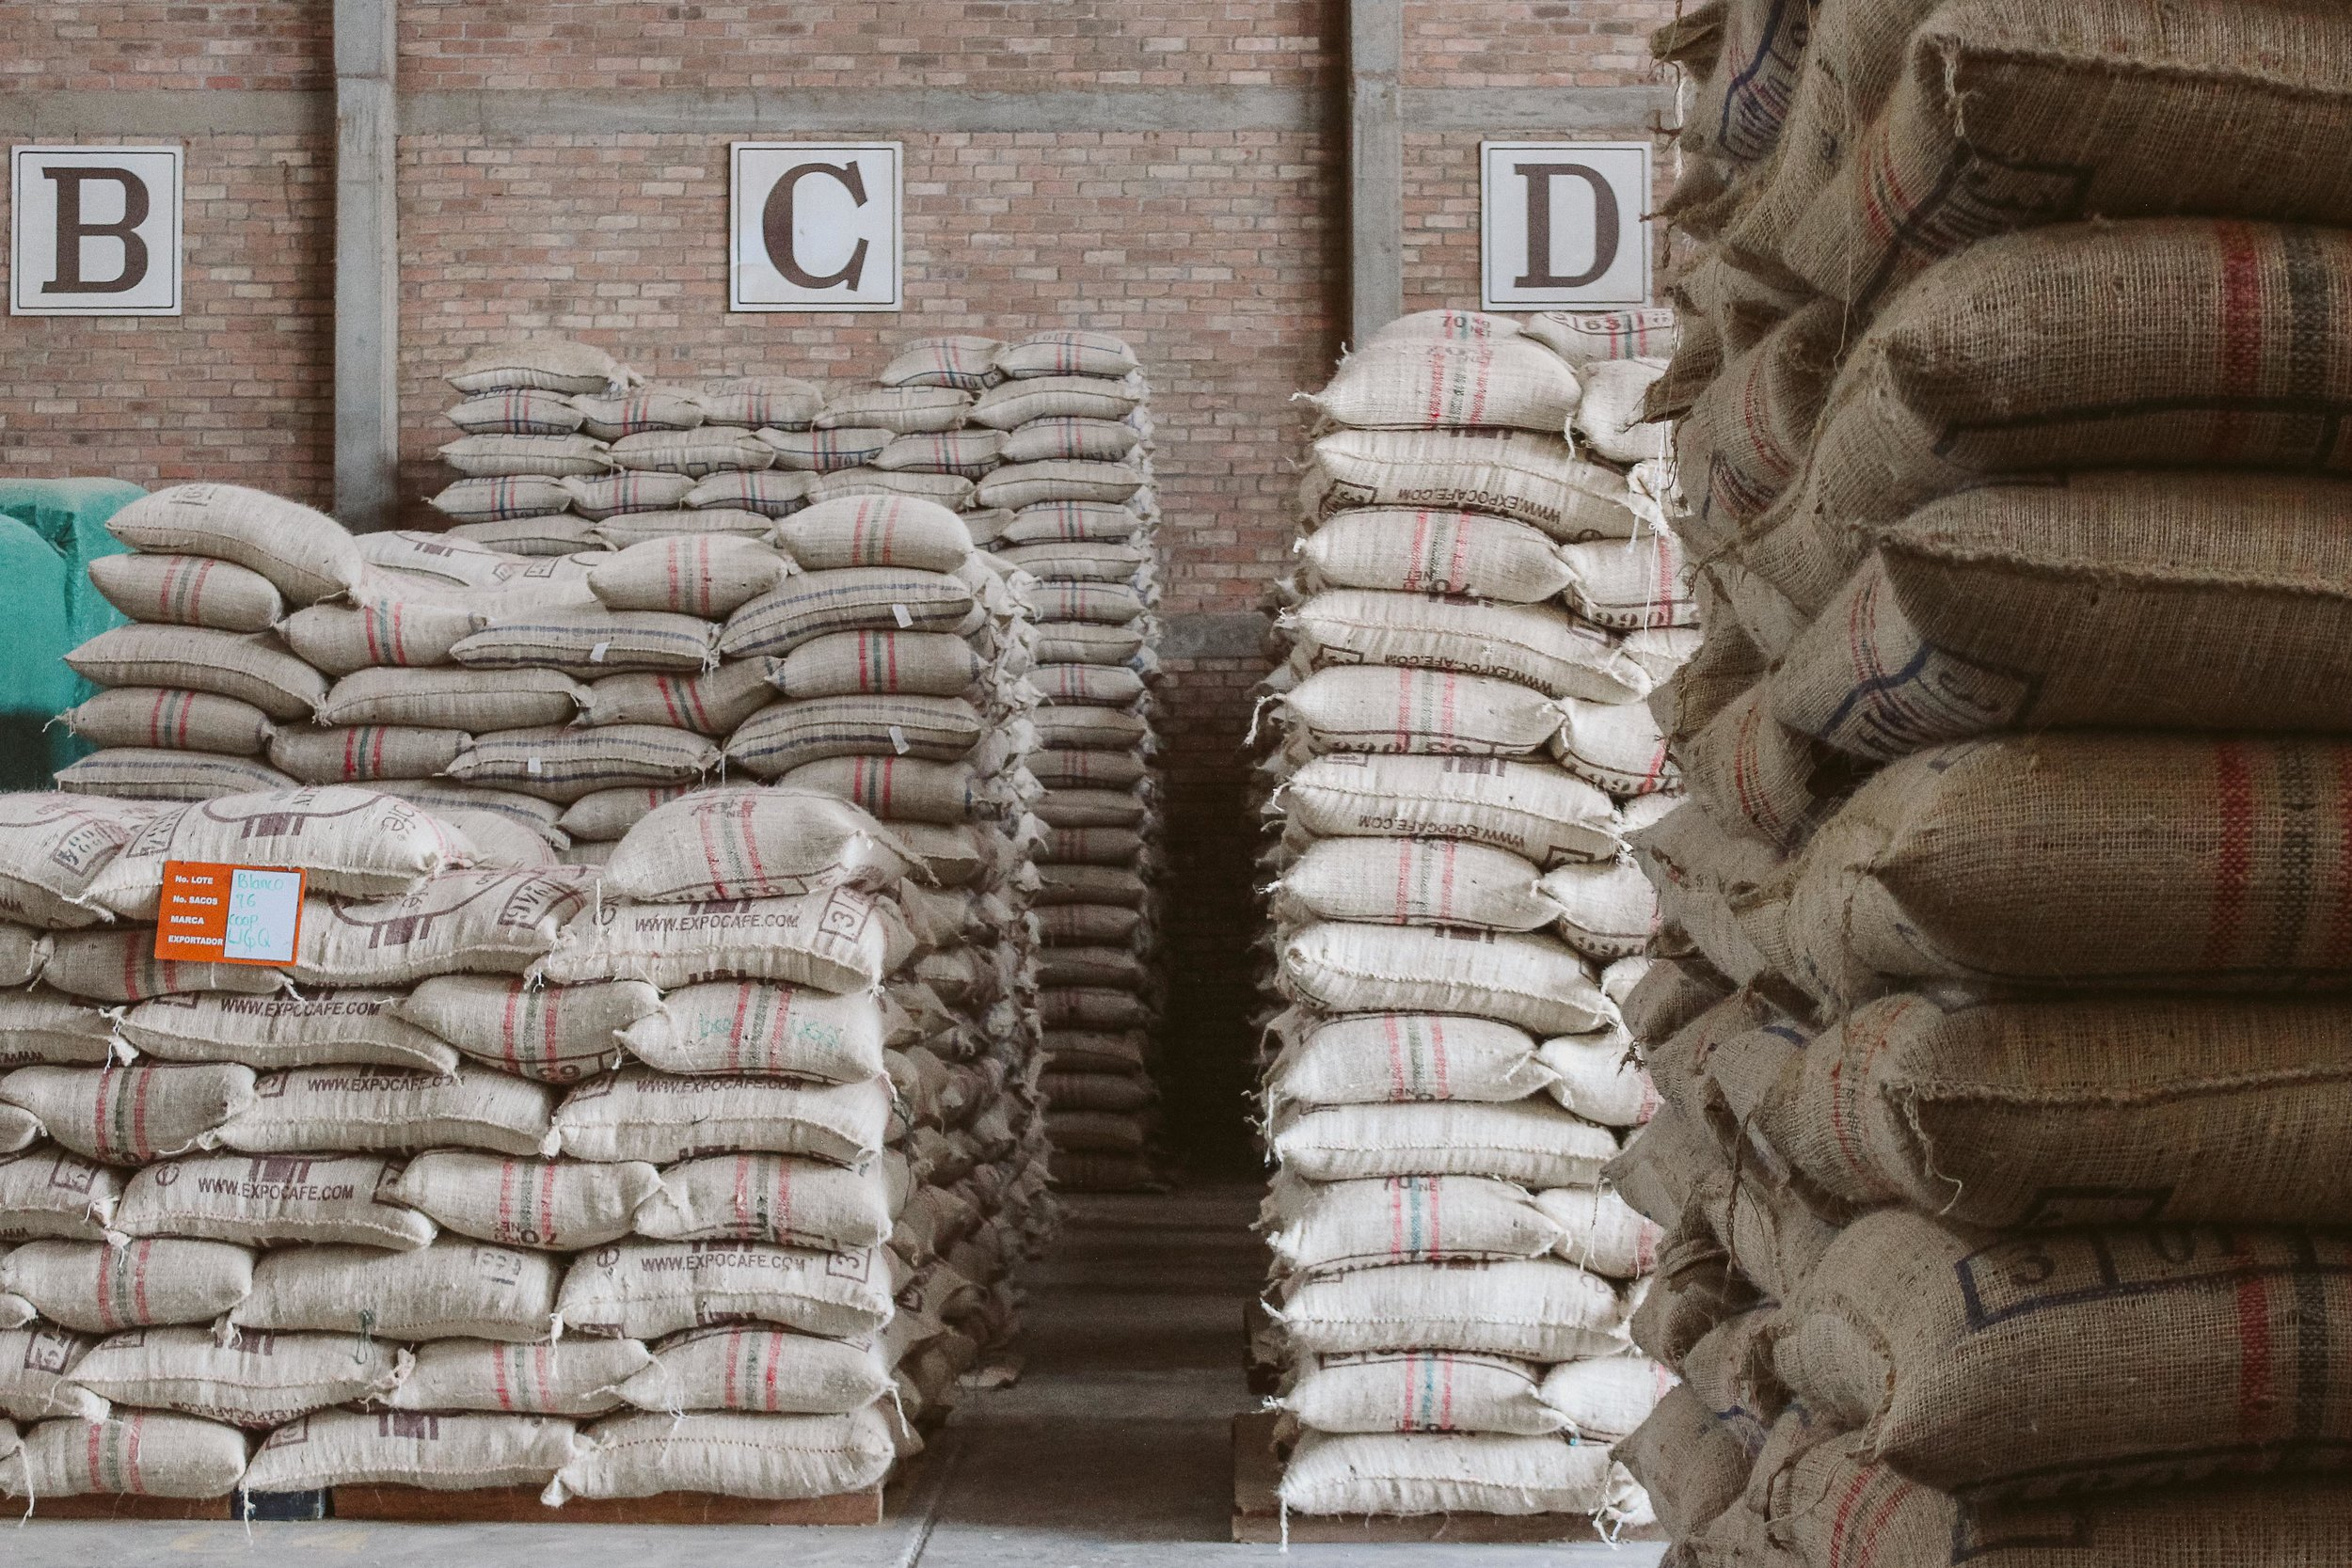 Colombia is the third largest producer of coffee in the world